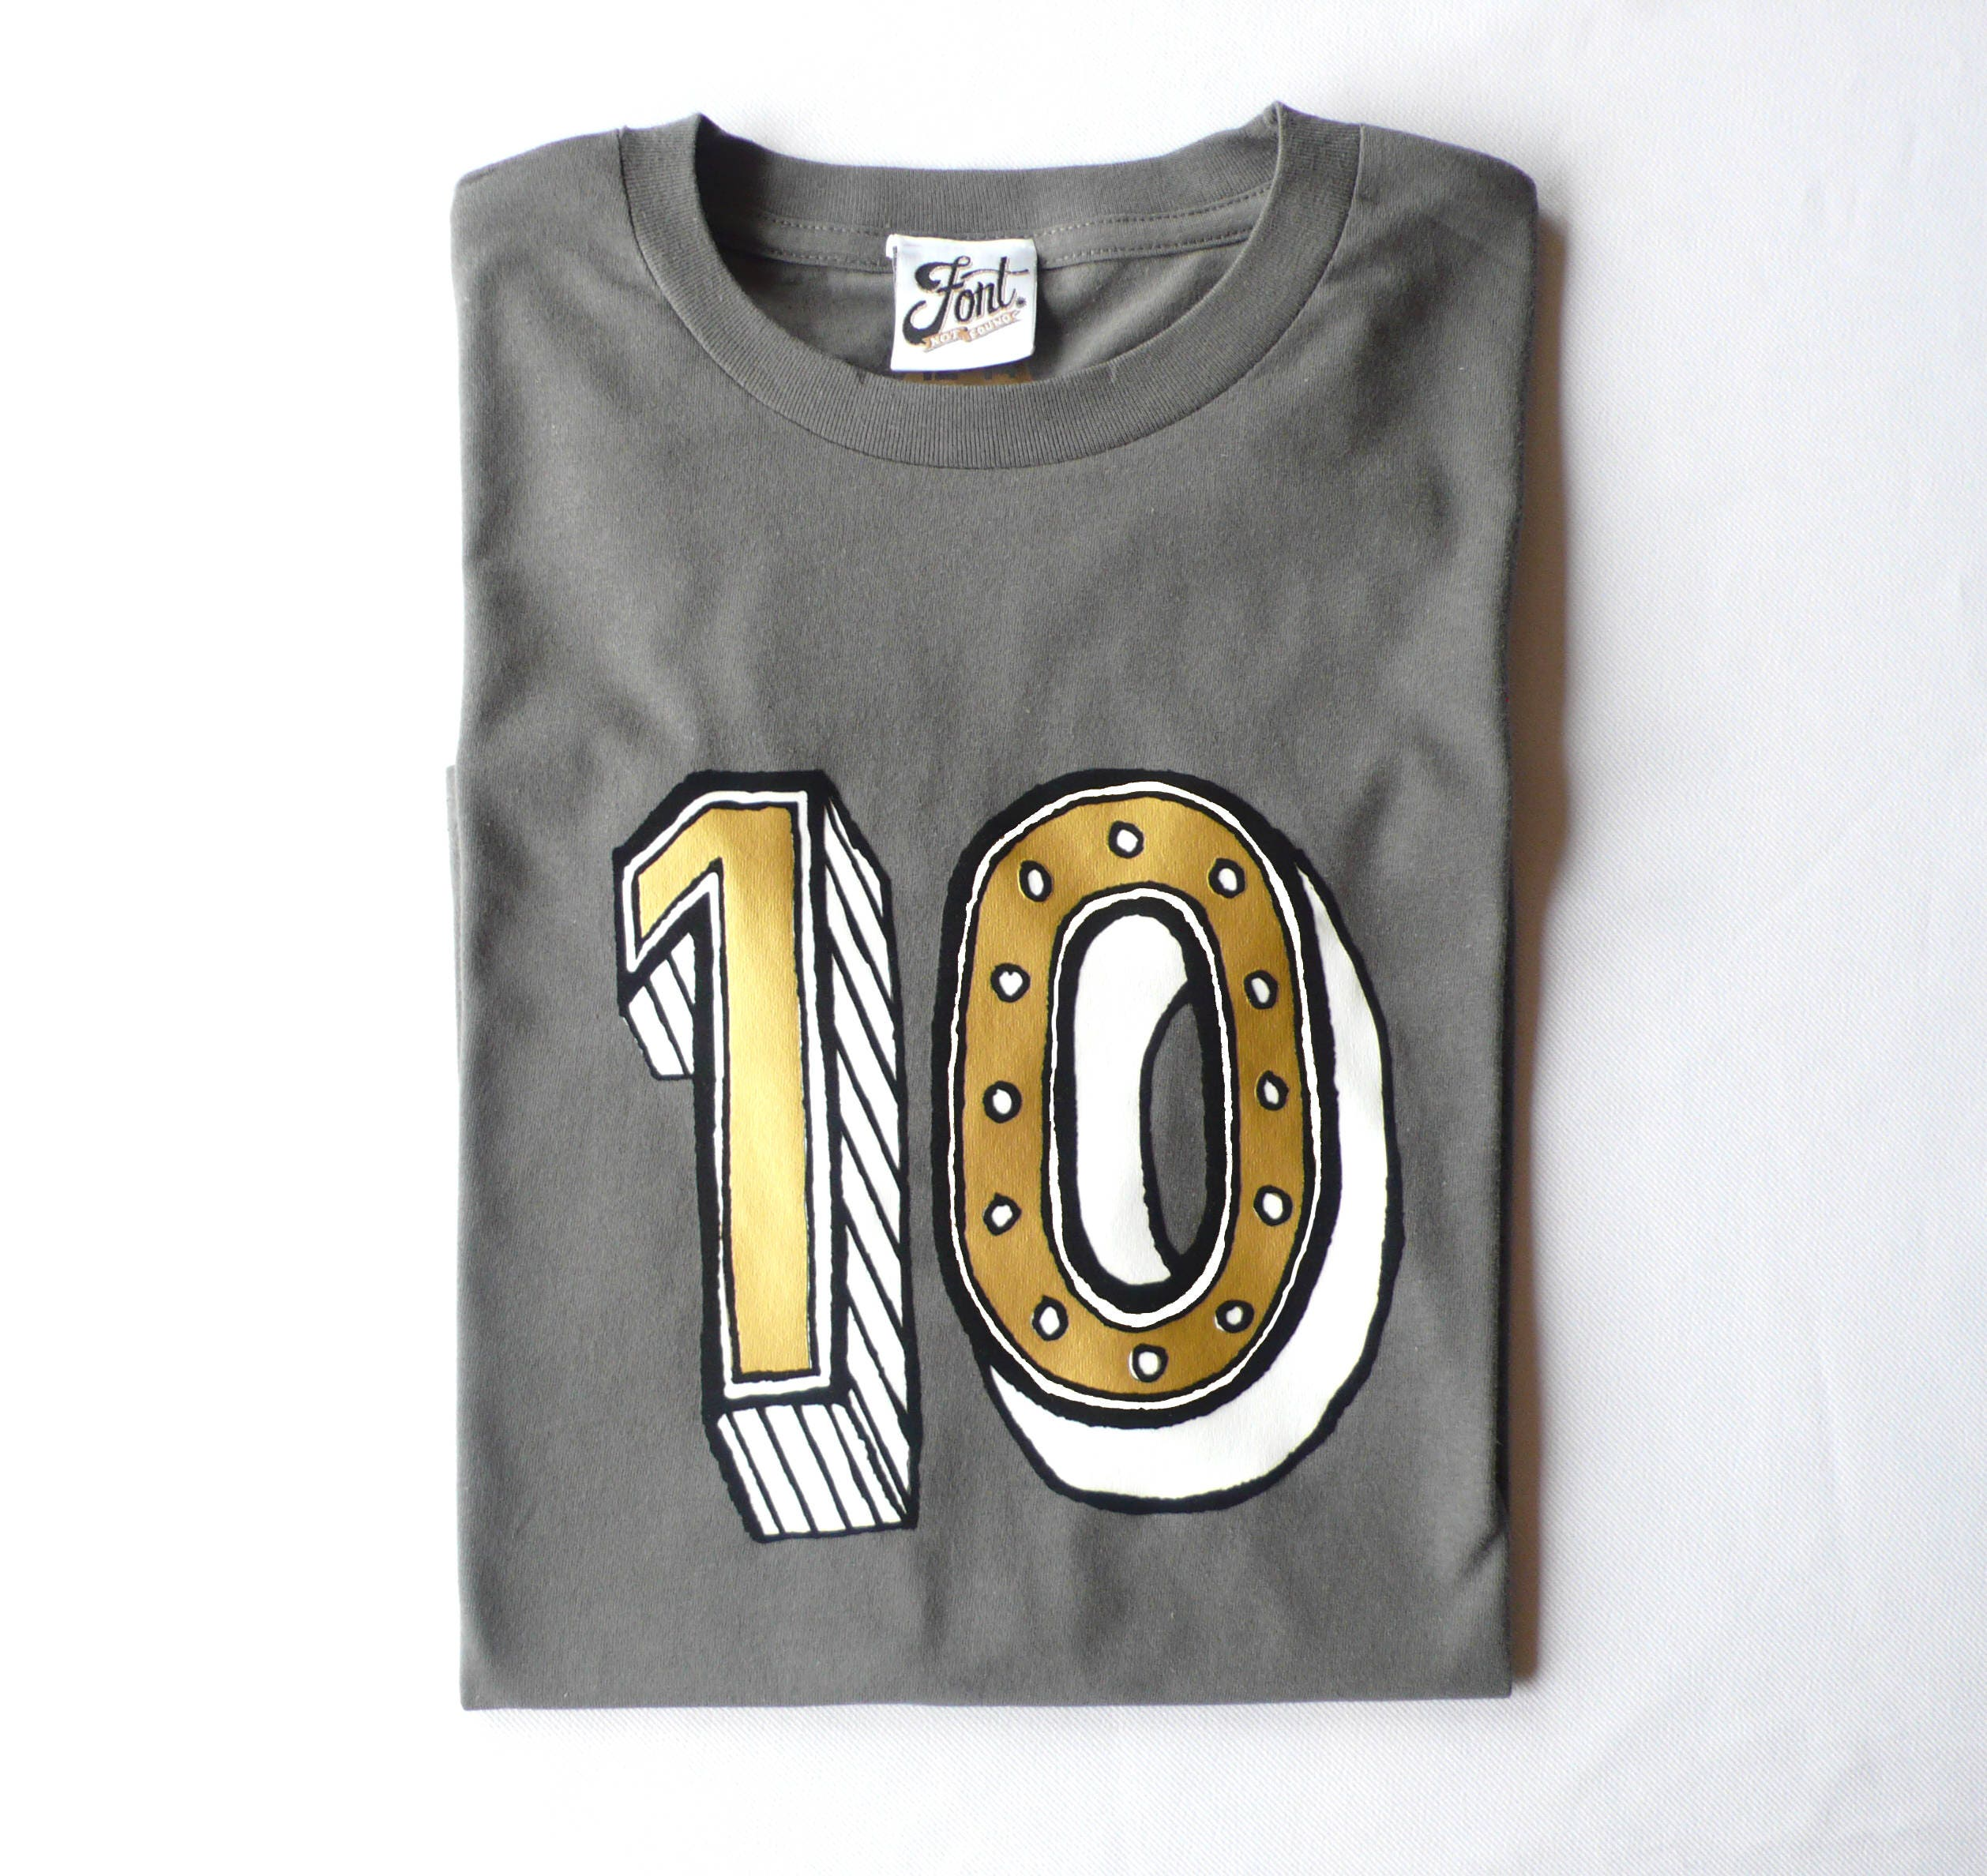 10th Birthday Shirt Ten Outfit Age 10 Year Old Girl Boy Number T Kids Tenth Tshirt Any Size 3 Colours